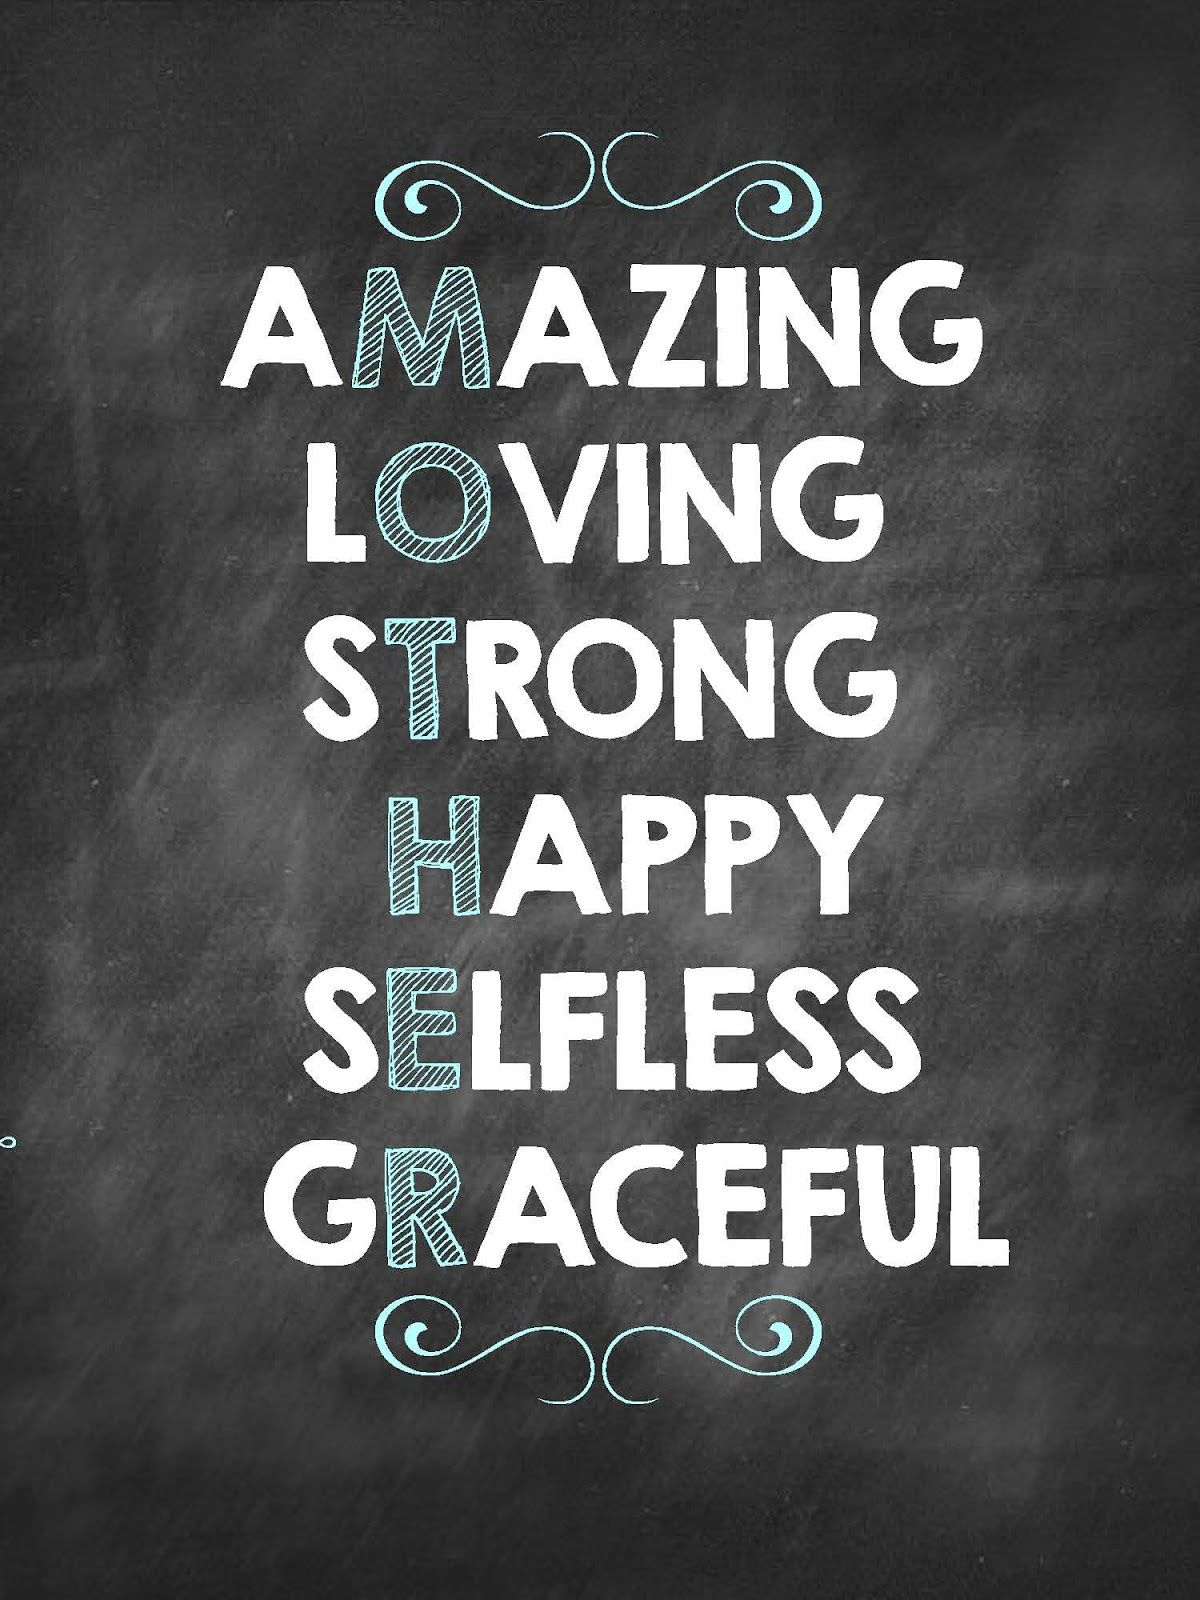 Mothers Day Quotes Enchanting Amazing Loving Strong Happy Selfless Gracefulthat's What A